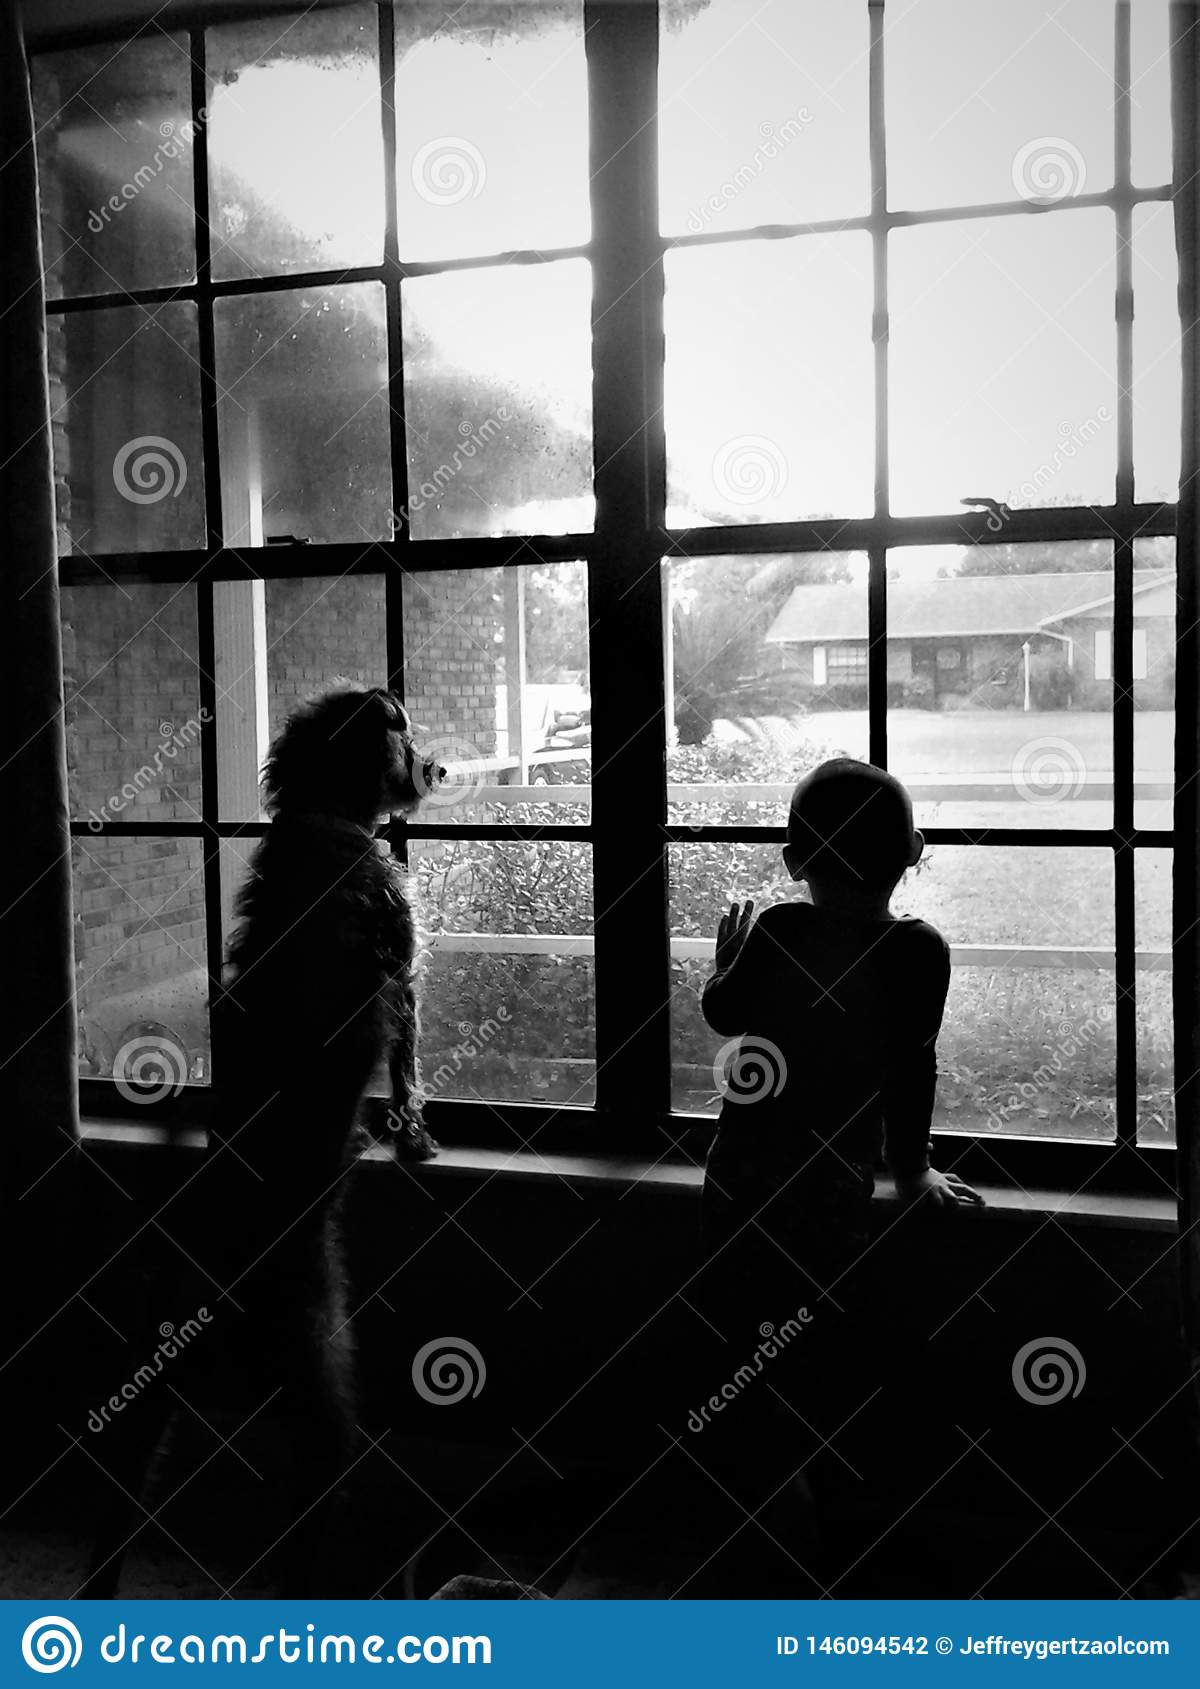 A Boy And His Dog Look Out The Window Stock Illustration Illustration Of Window Look 146094542